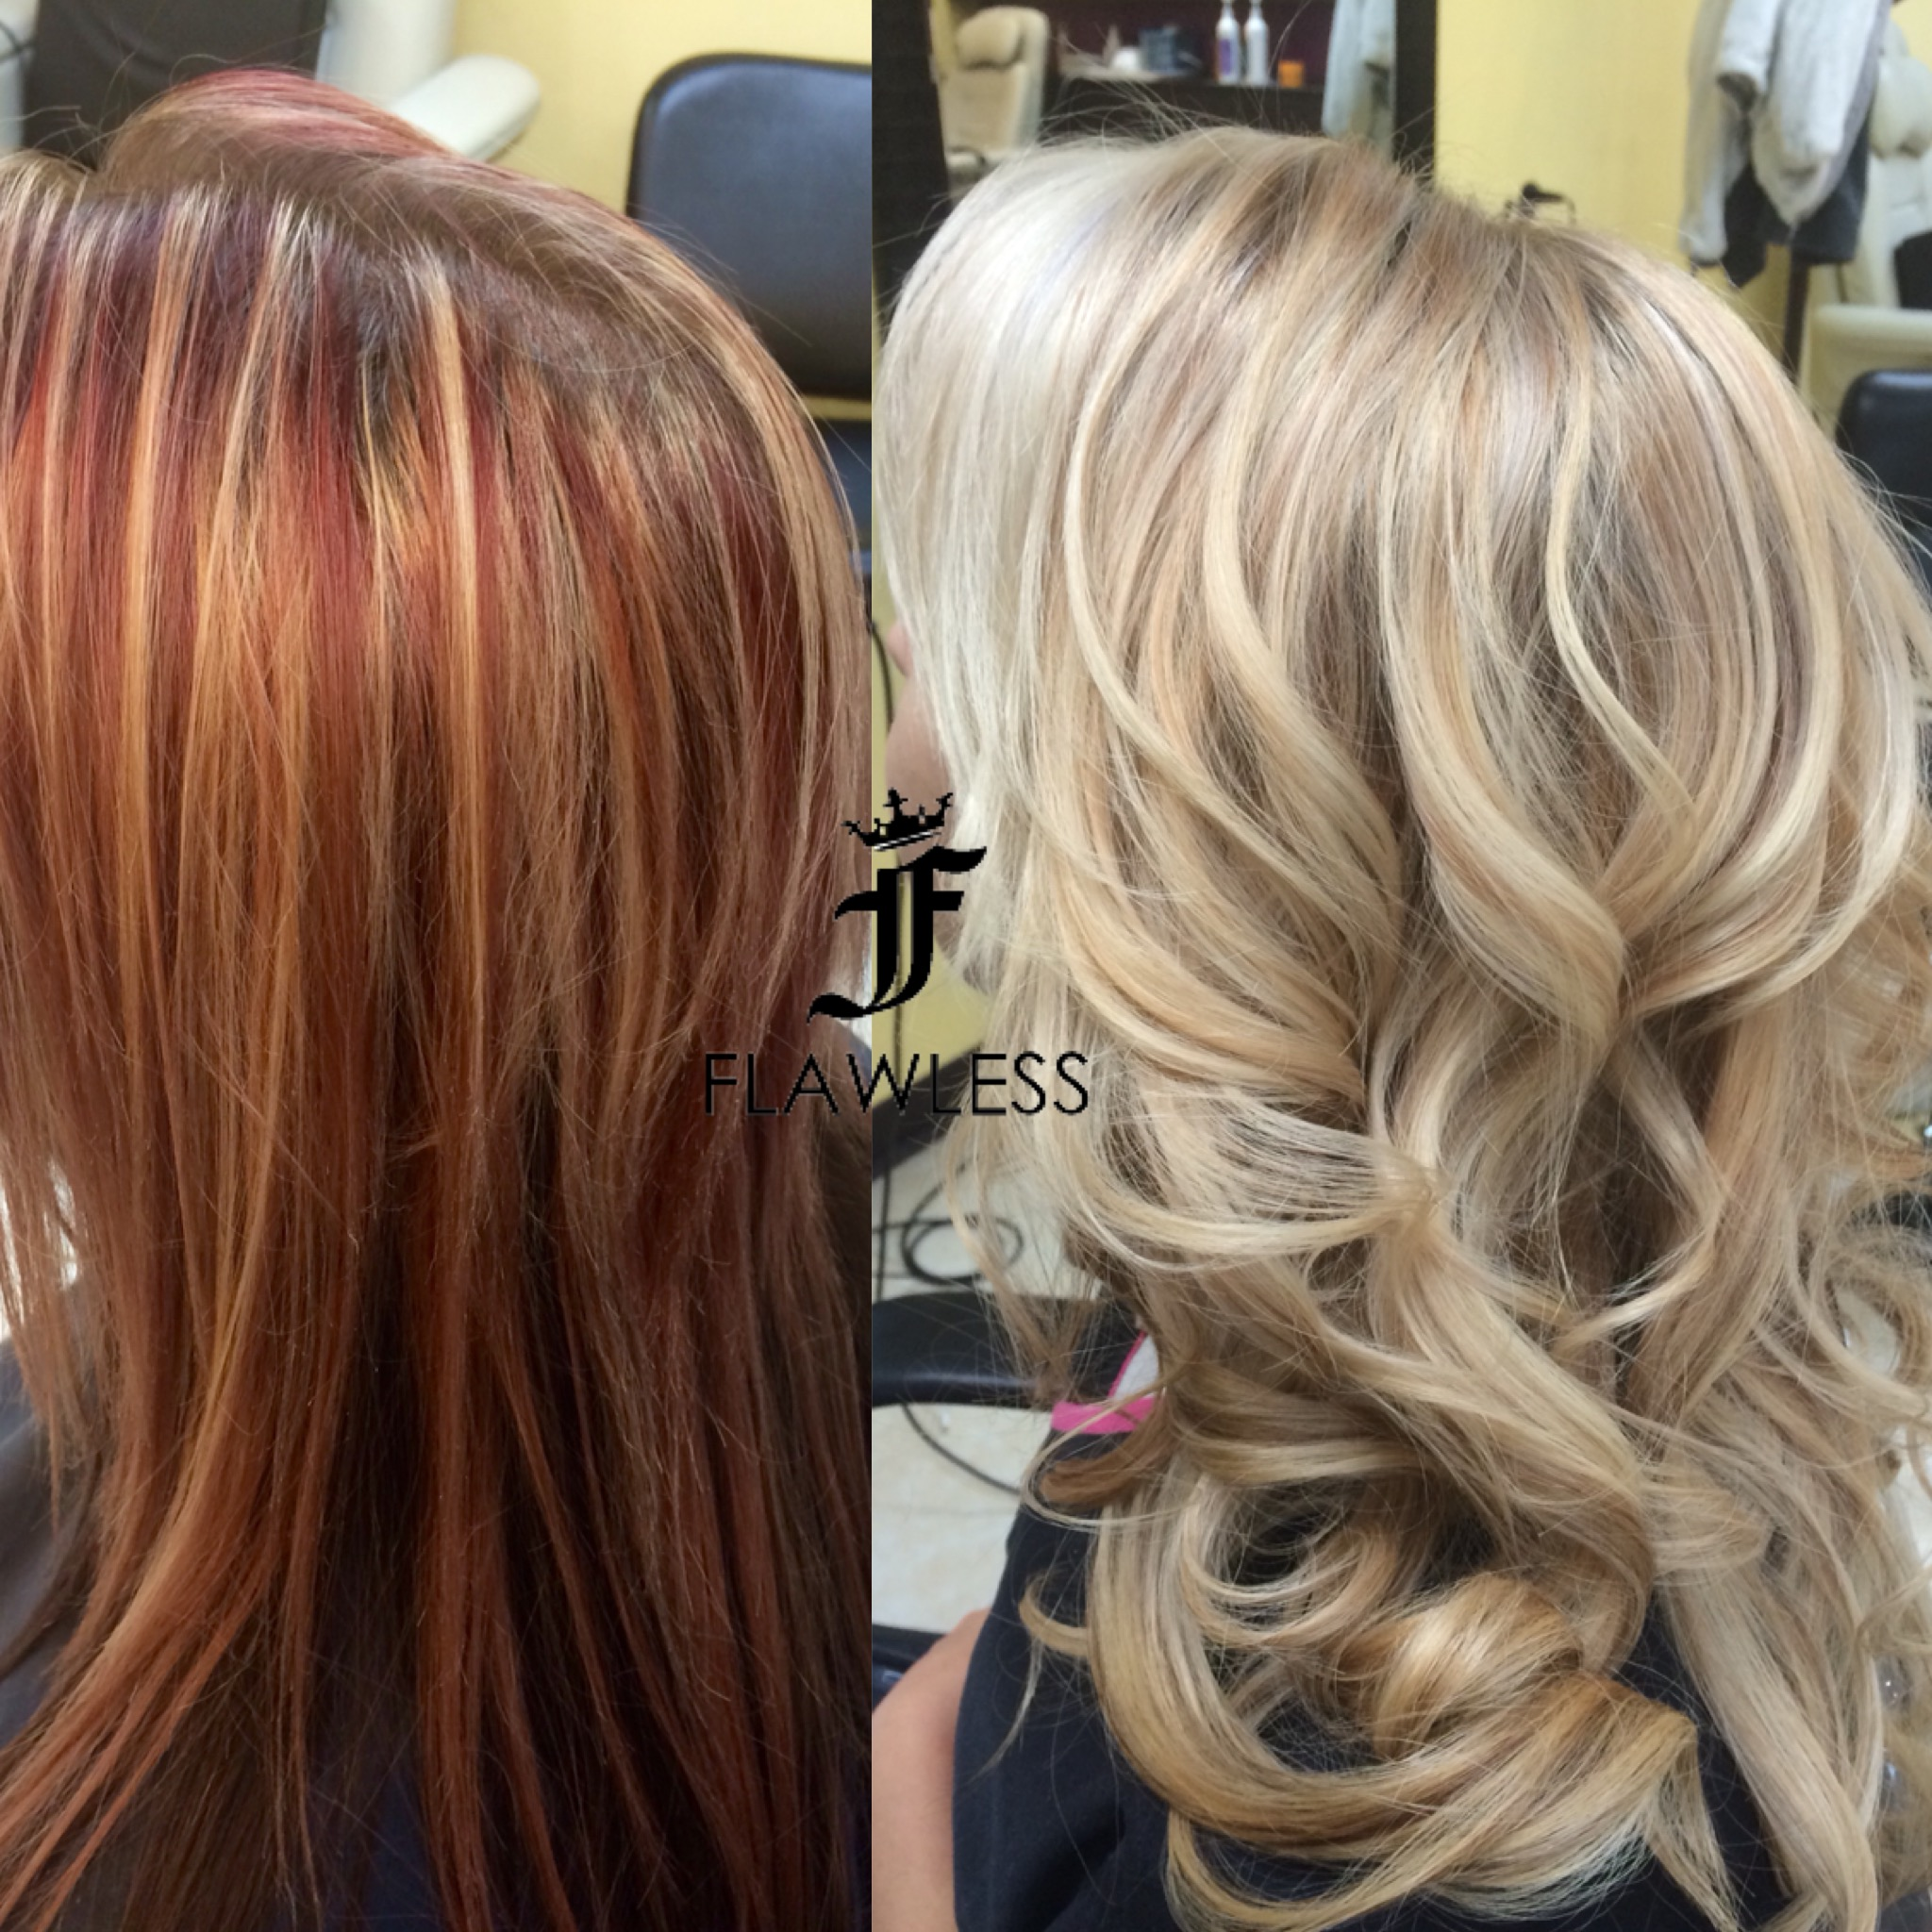 TRANSFORMATION: Going For BOMBSHELL Blonde